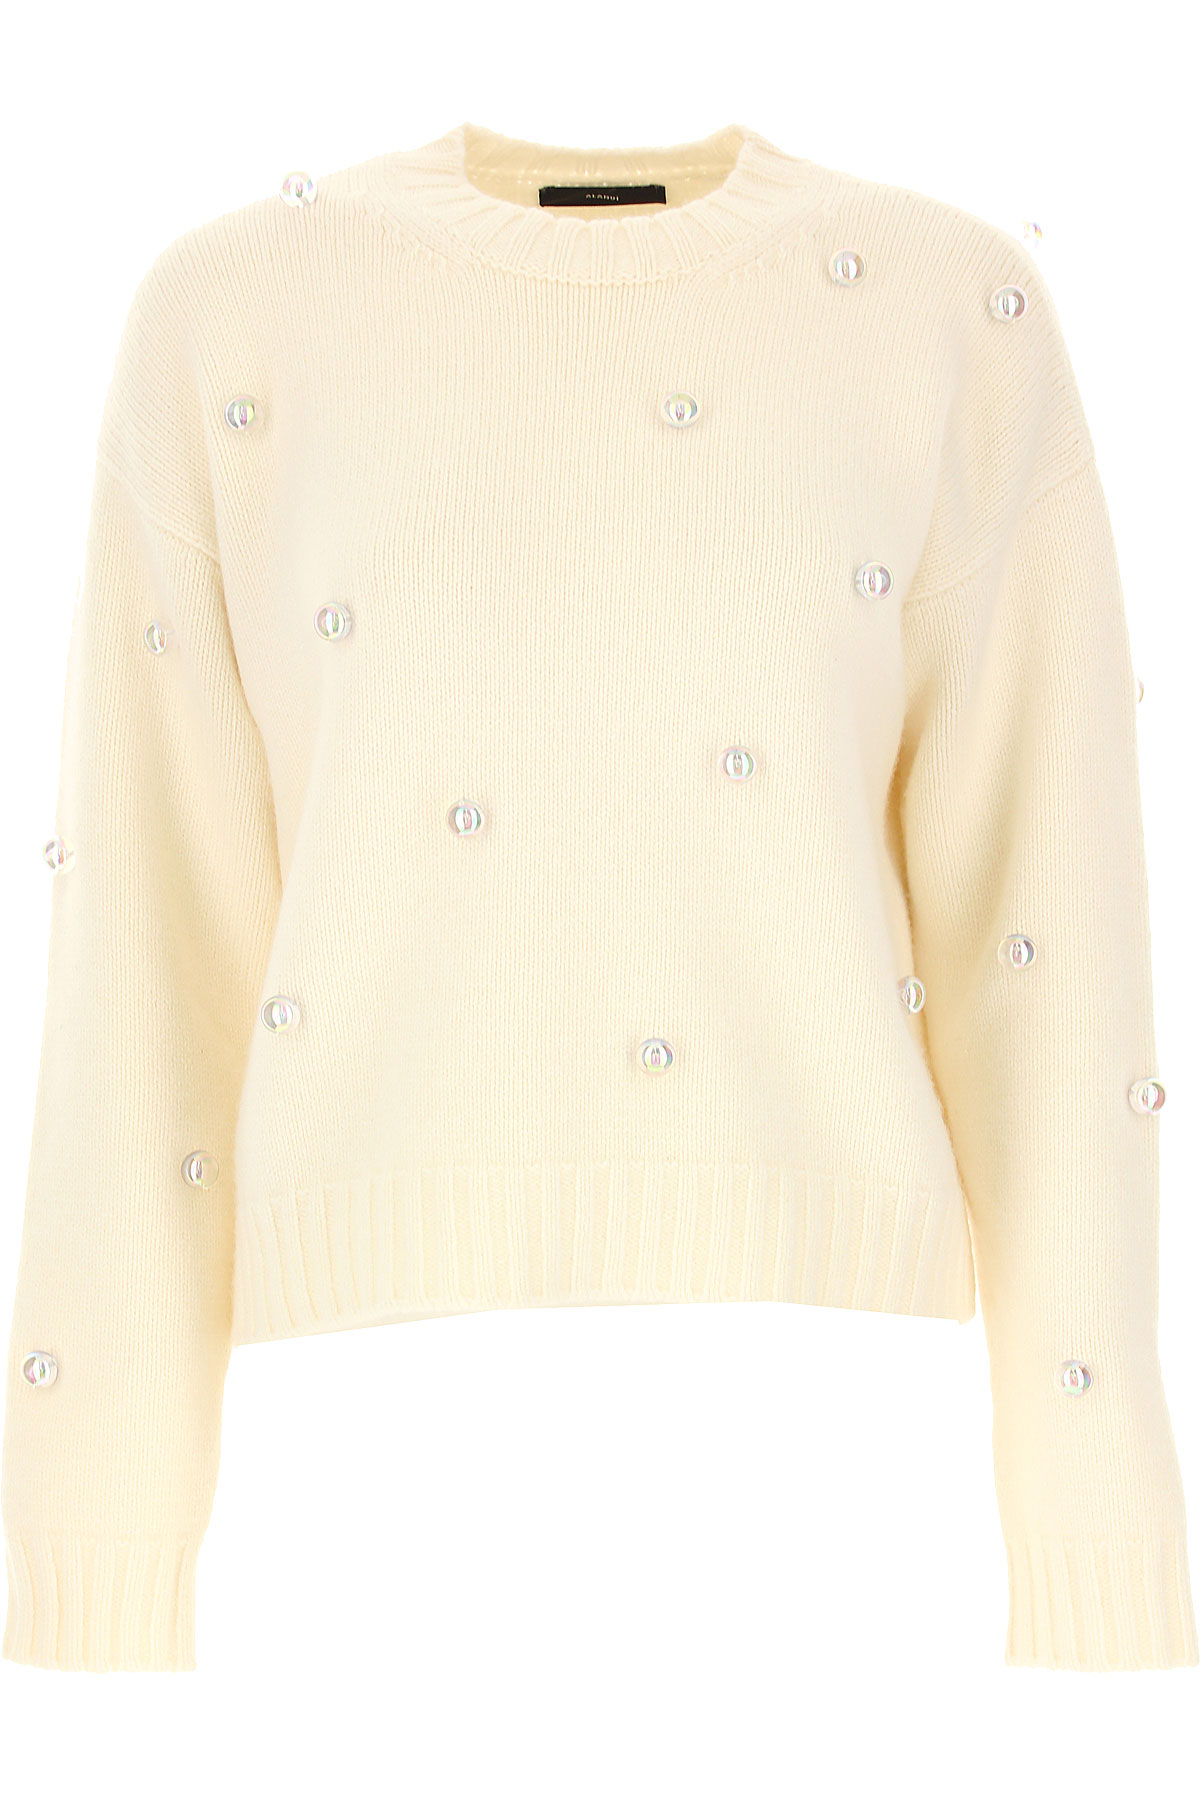 ALANUI Sweater for Women Jumper On Sale, White, Cashemere, 2019, 2 4 6 8